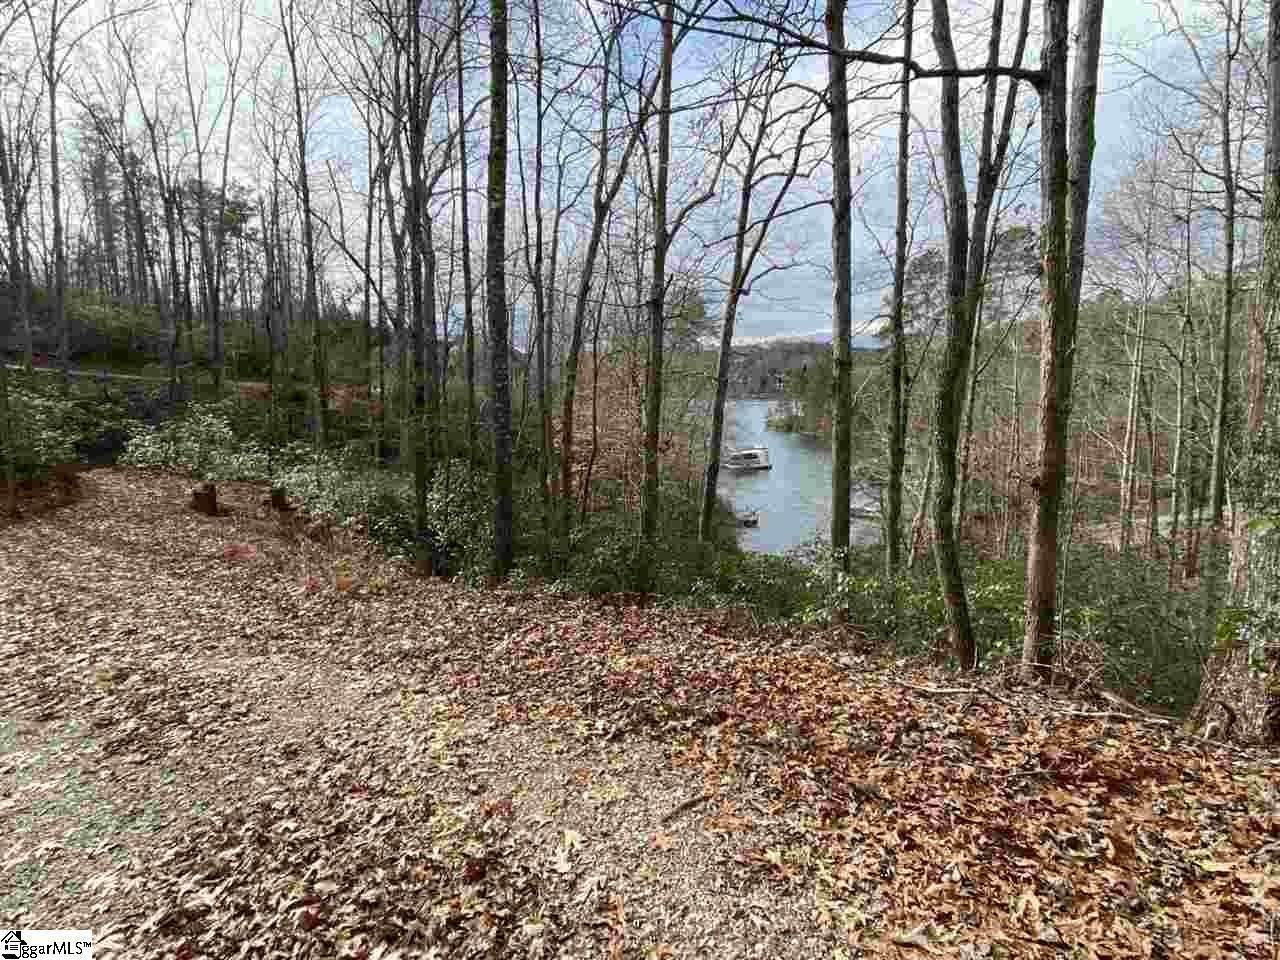 2. Residential Lot for Sale at The Cliffs At Keowee, Sunset, SC 29685